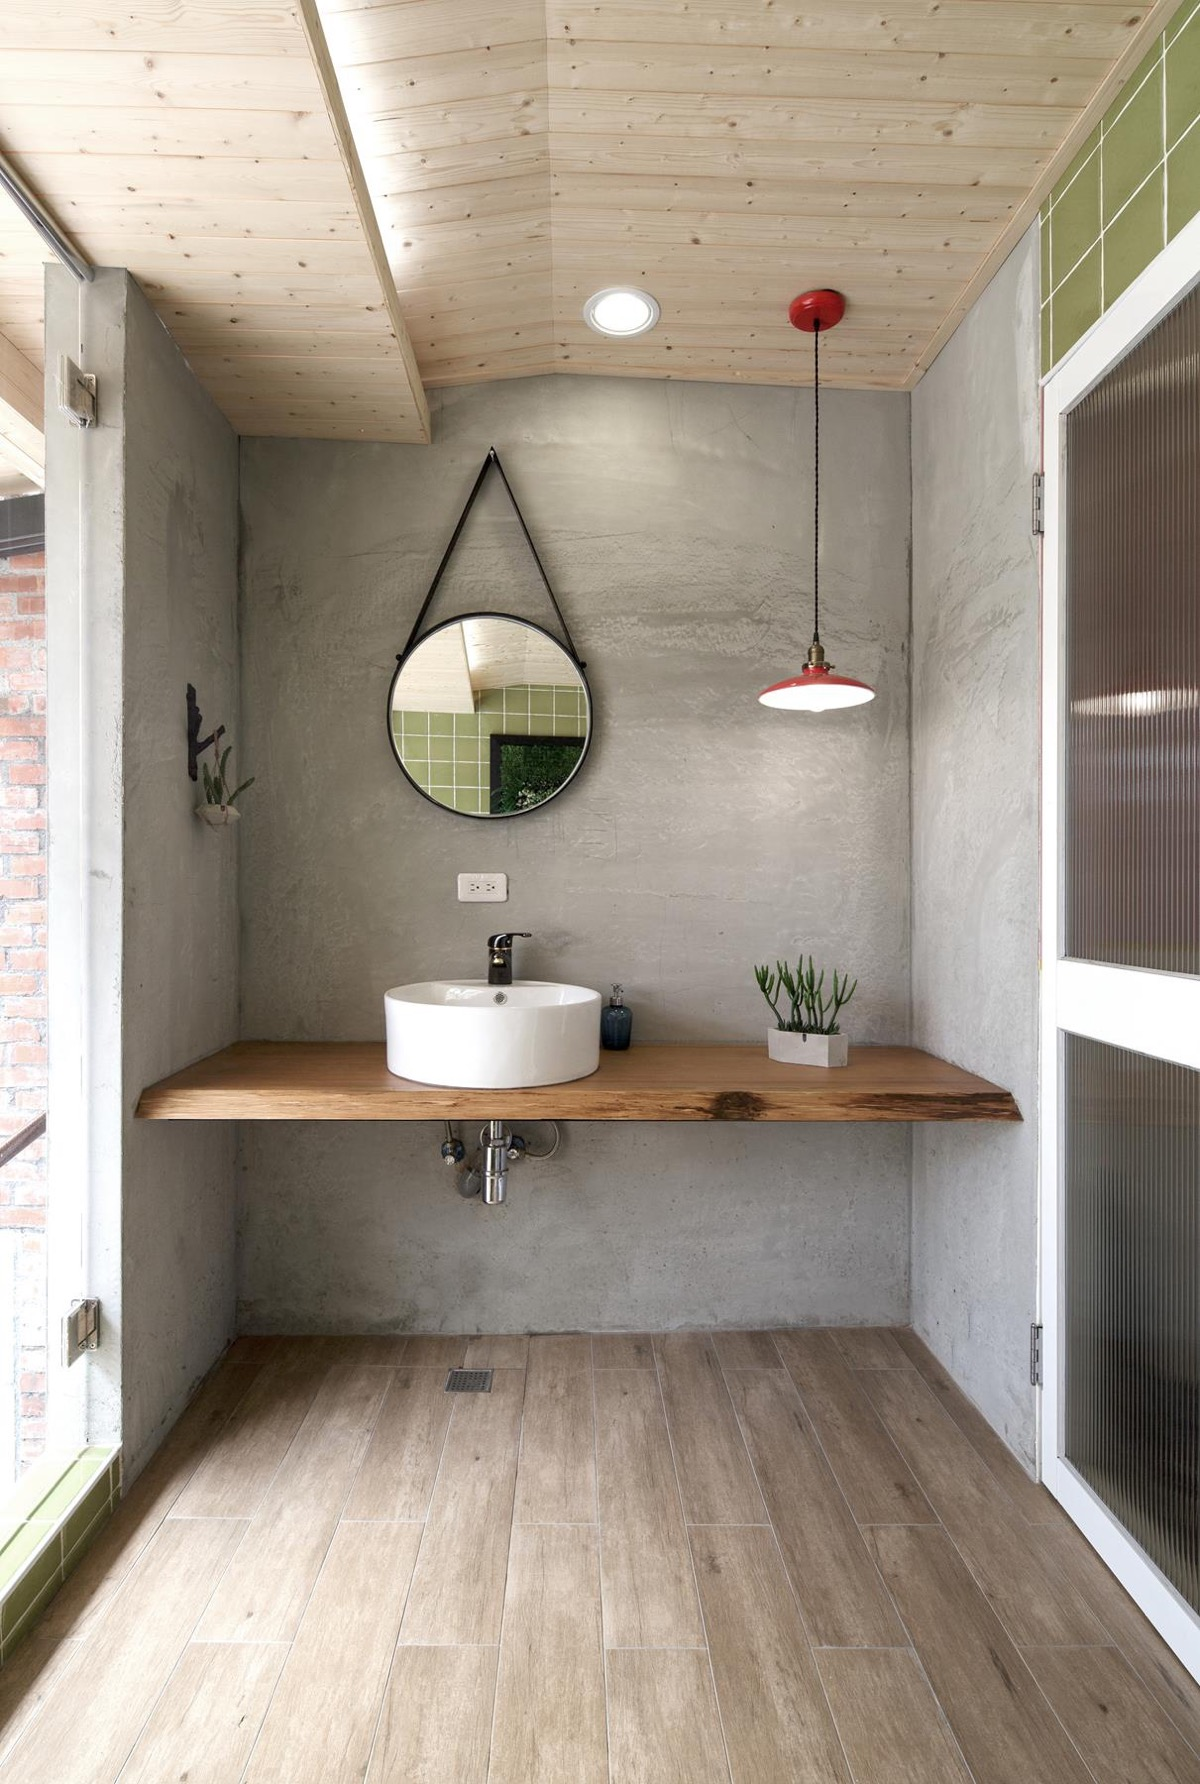 51 Industrial Style Bathrooms Plus Ideas & Accessories You Can Copy From Them images 49